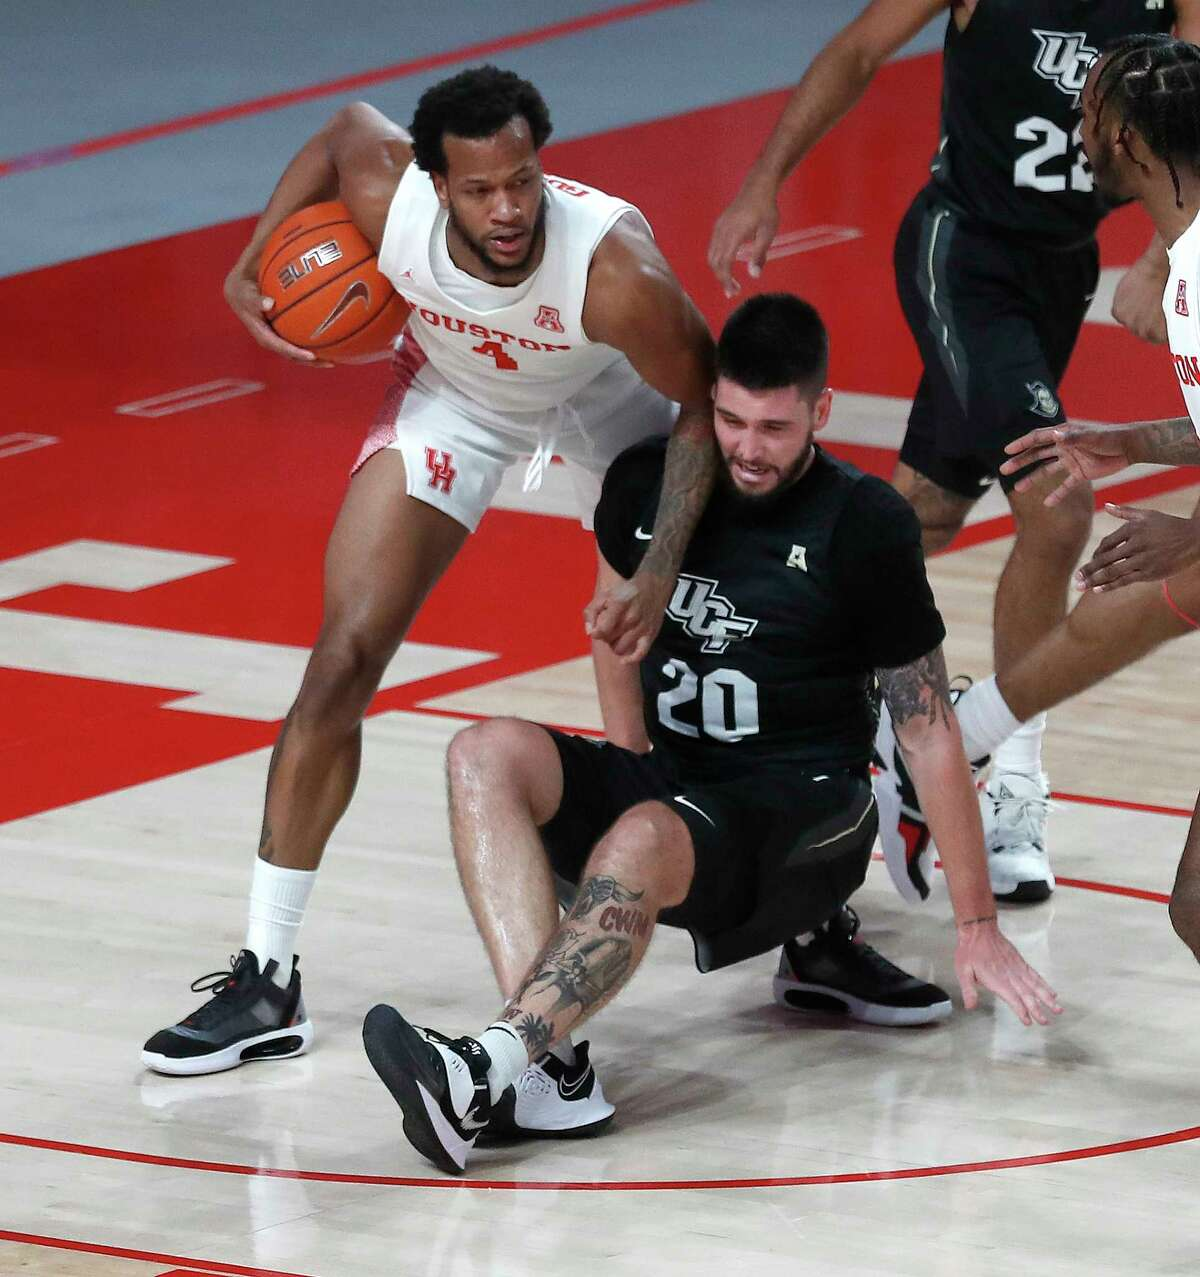 Houston Cougars forward Justin Gorham (4) battles against UCF Knights forward Sean Mobley (20) during the first half of a men's NCAA basketball game at the Fertitta Center, in Houston, Sunday, Jan. 17, 2021.